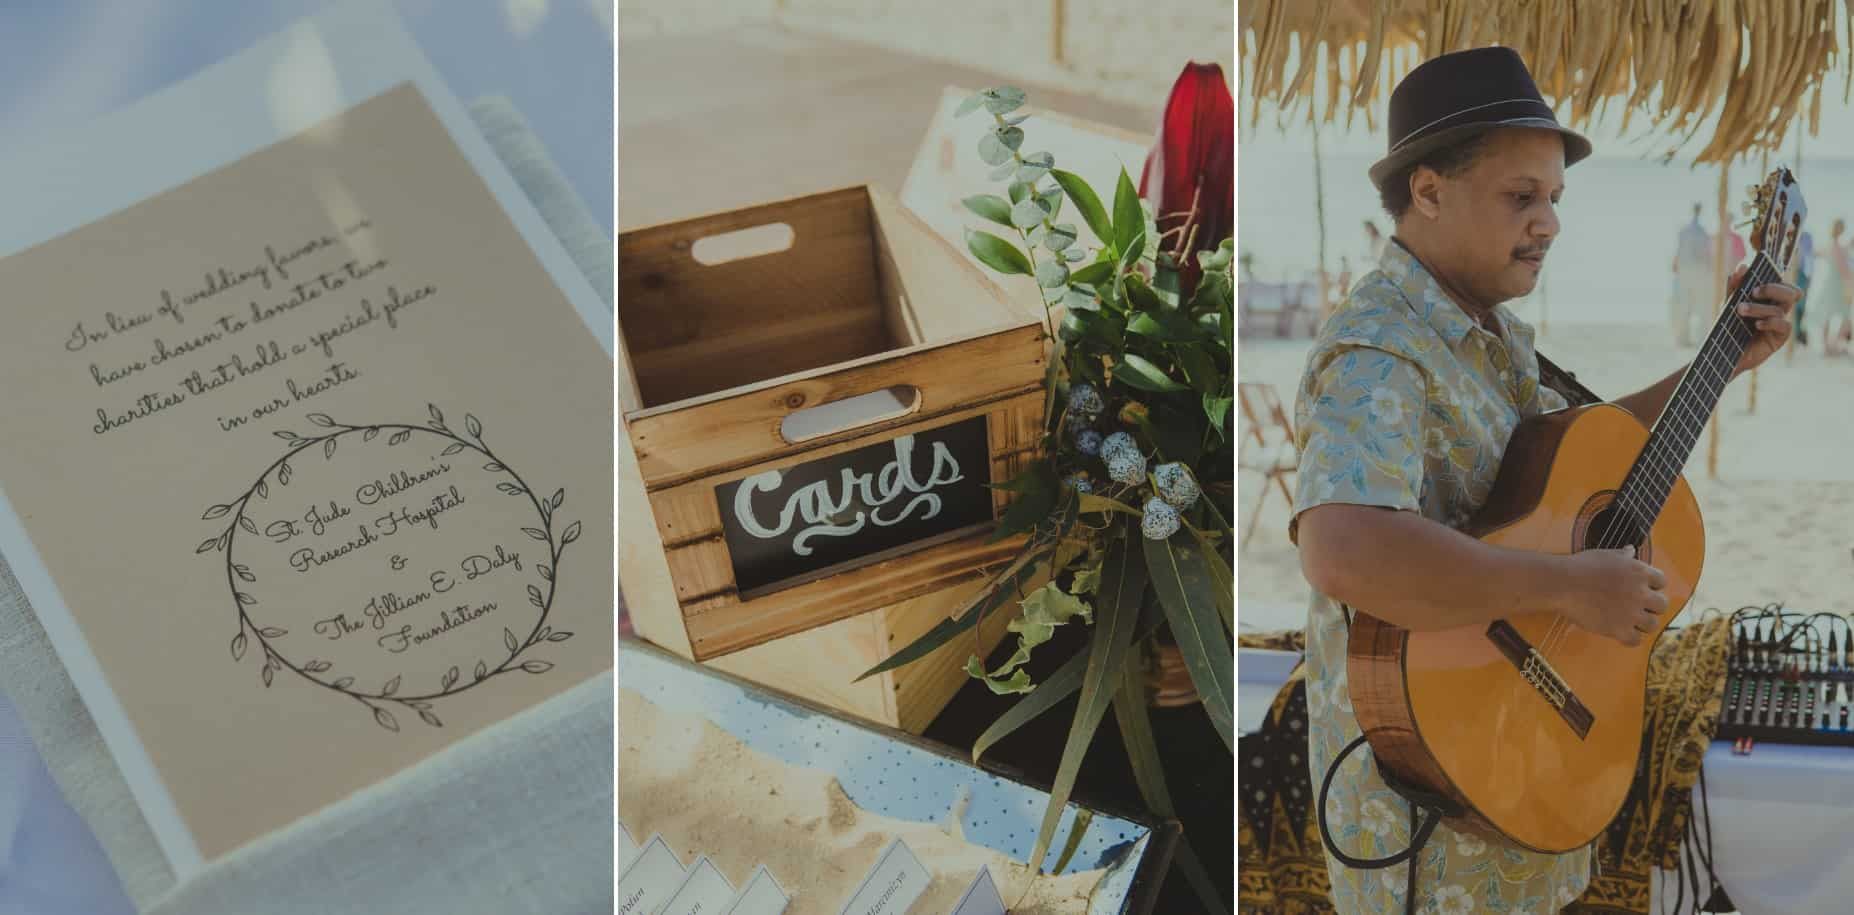 wedding-ceremony-details-menu-cards-celebrations-ltd-cayman-islands-destination-wedding